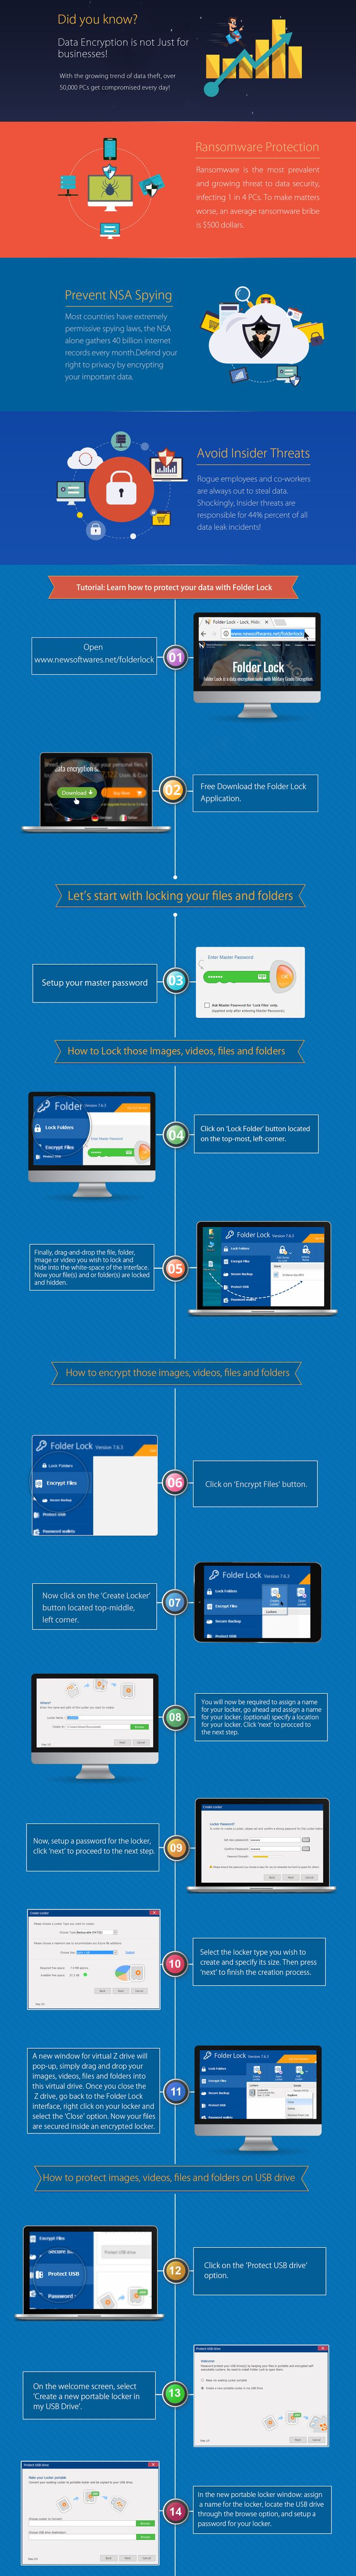 Tutorial: Learn how to protect your data with Folder Lock. #InfoGraphics #DataProtection #FolderLock